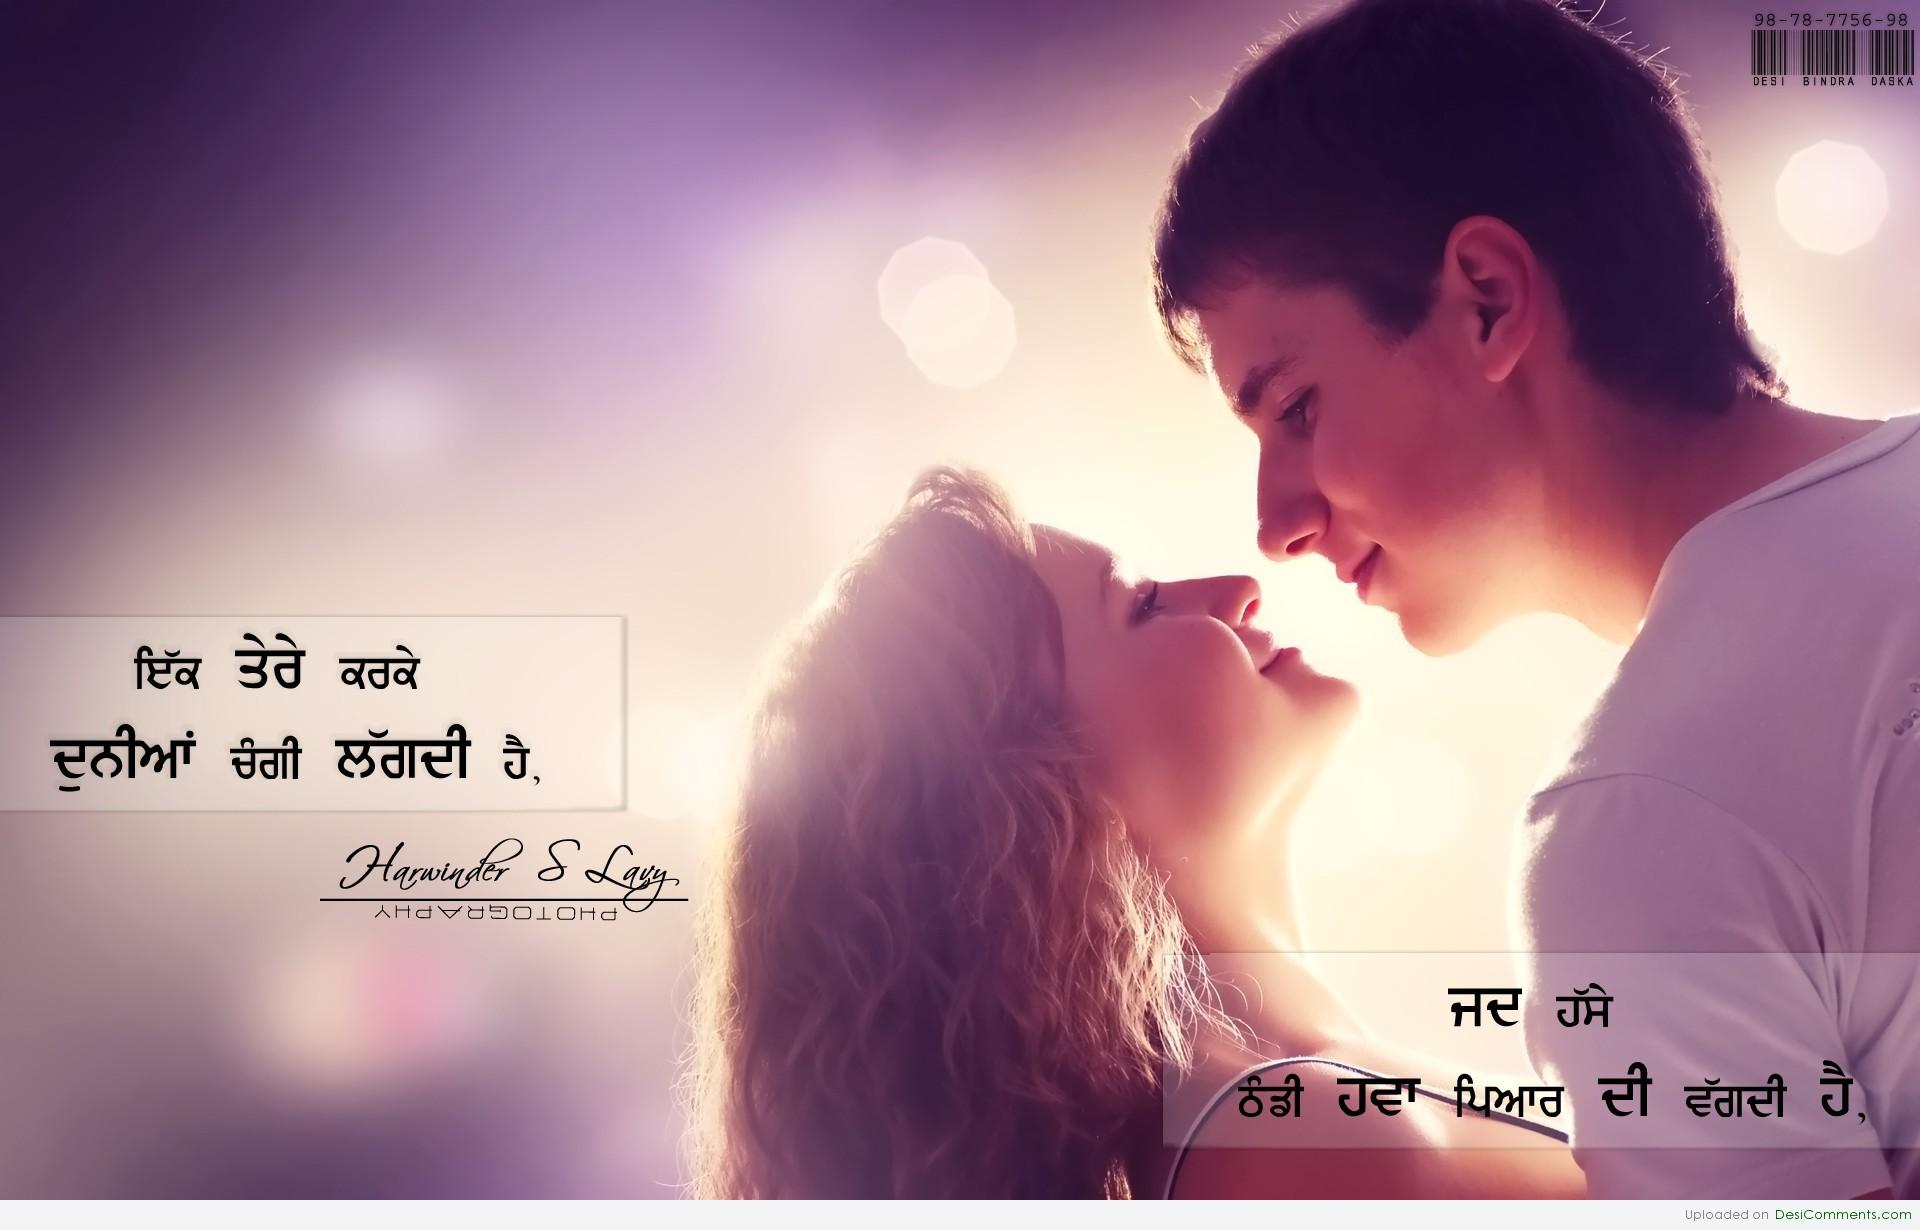 Punjabi Love Pictures, Images, Graphics for Facebook, Whatsapp, Pinterest - Page 4